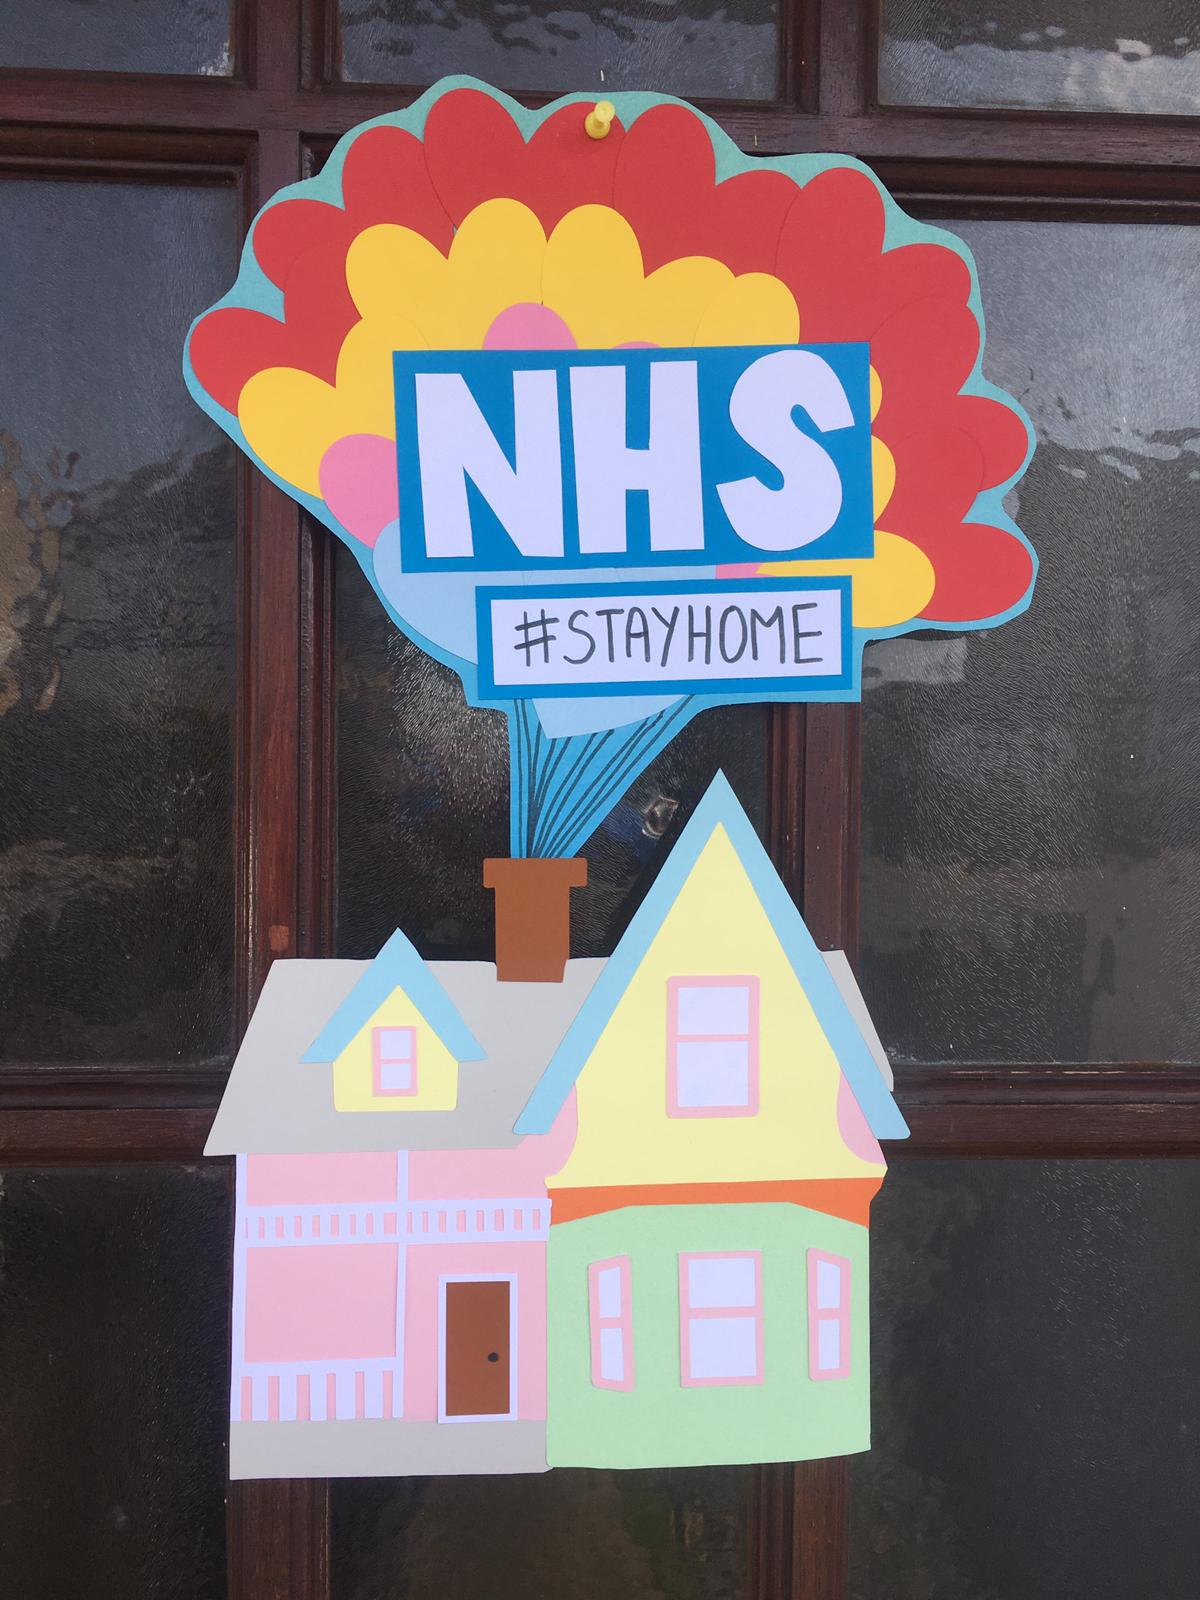 NHS stay home sign